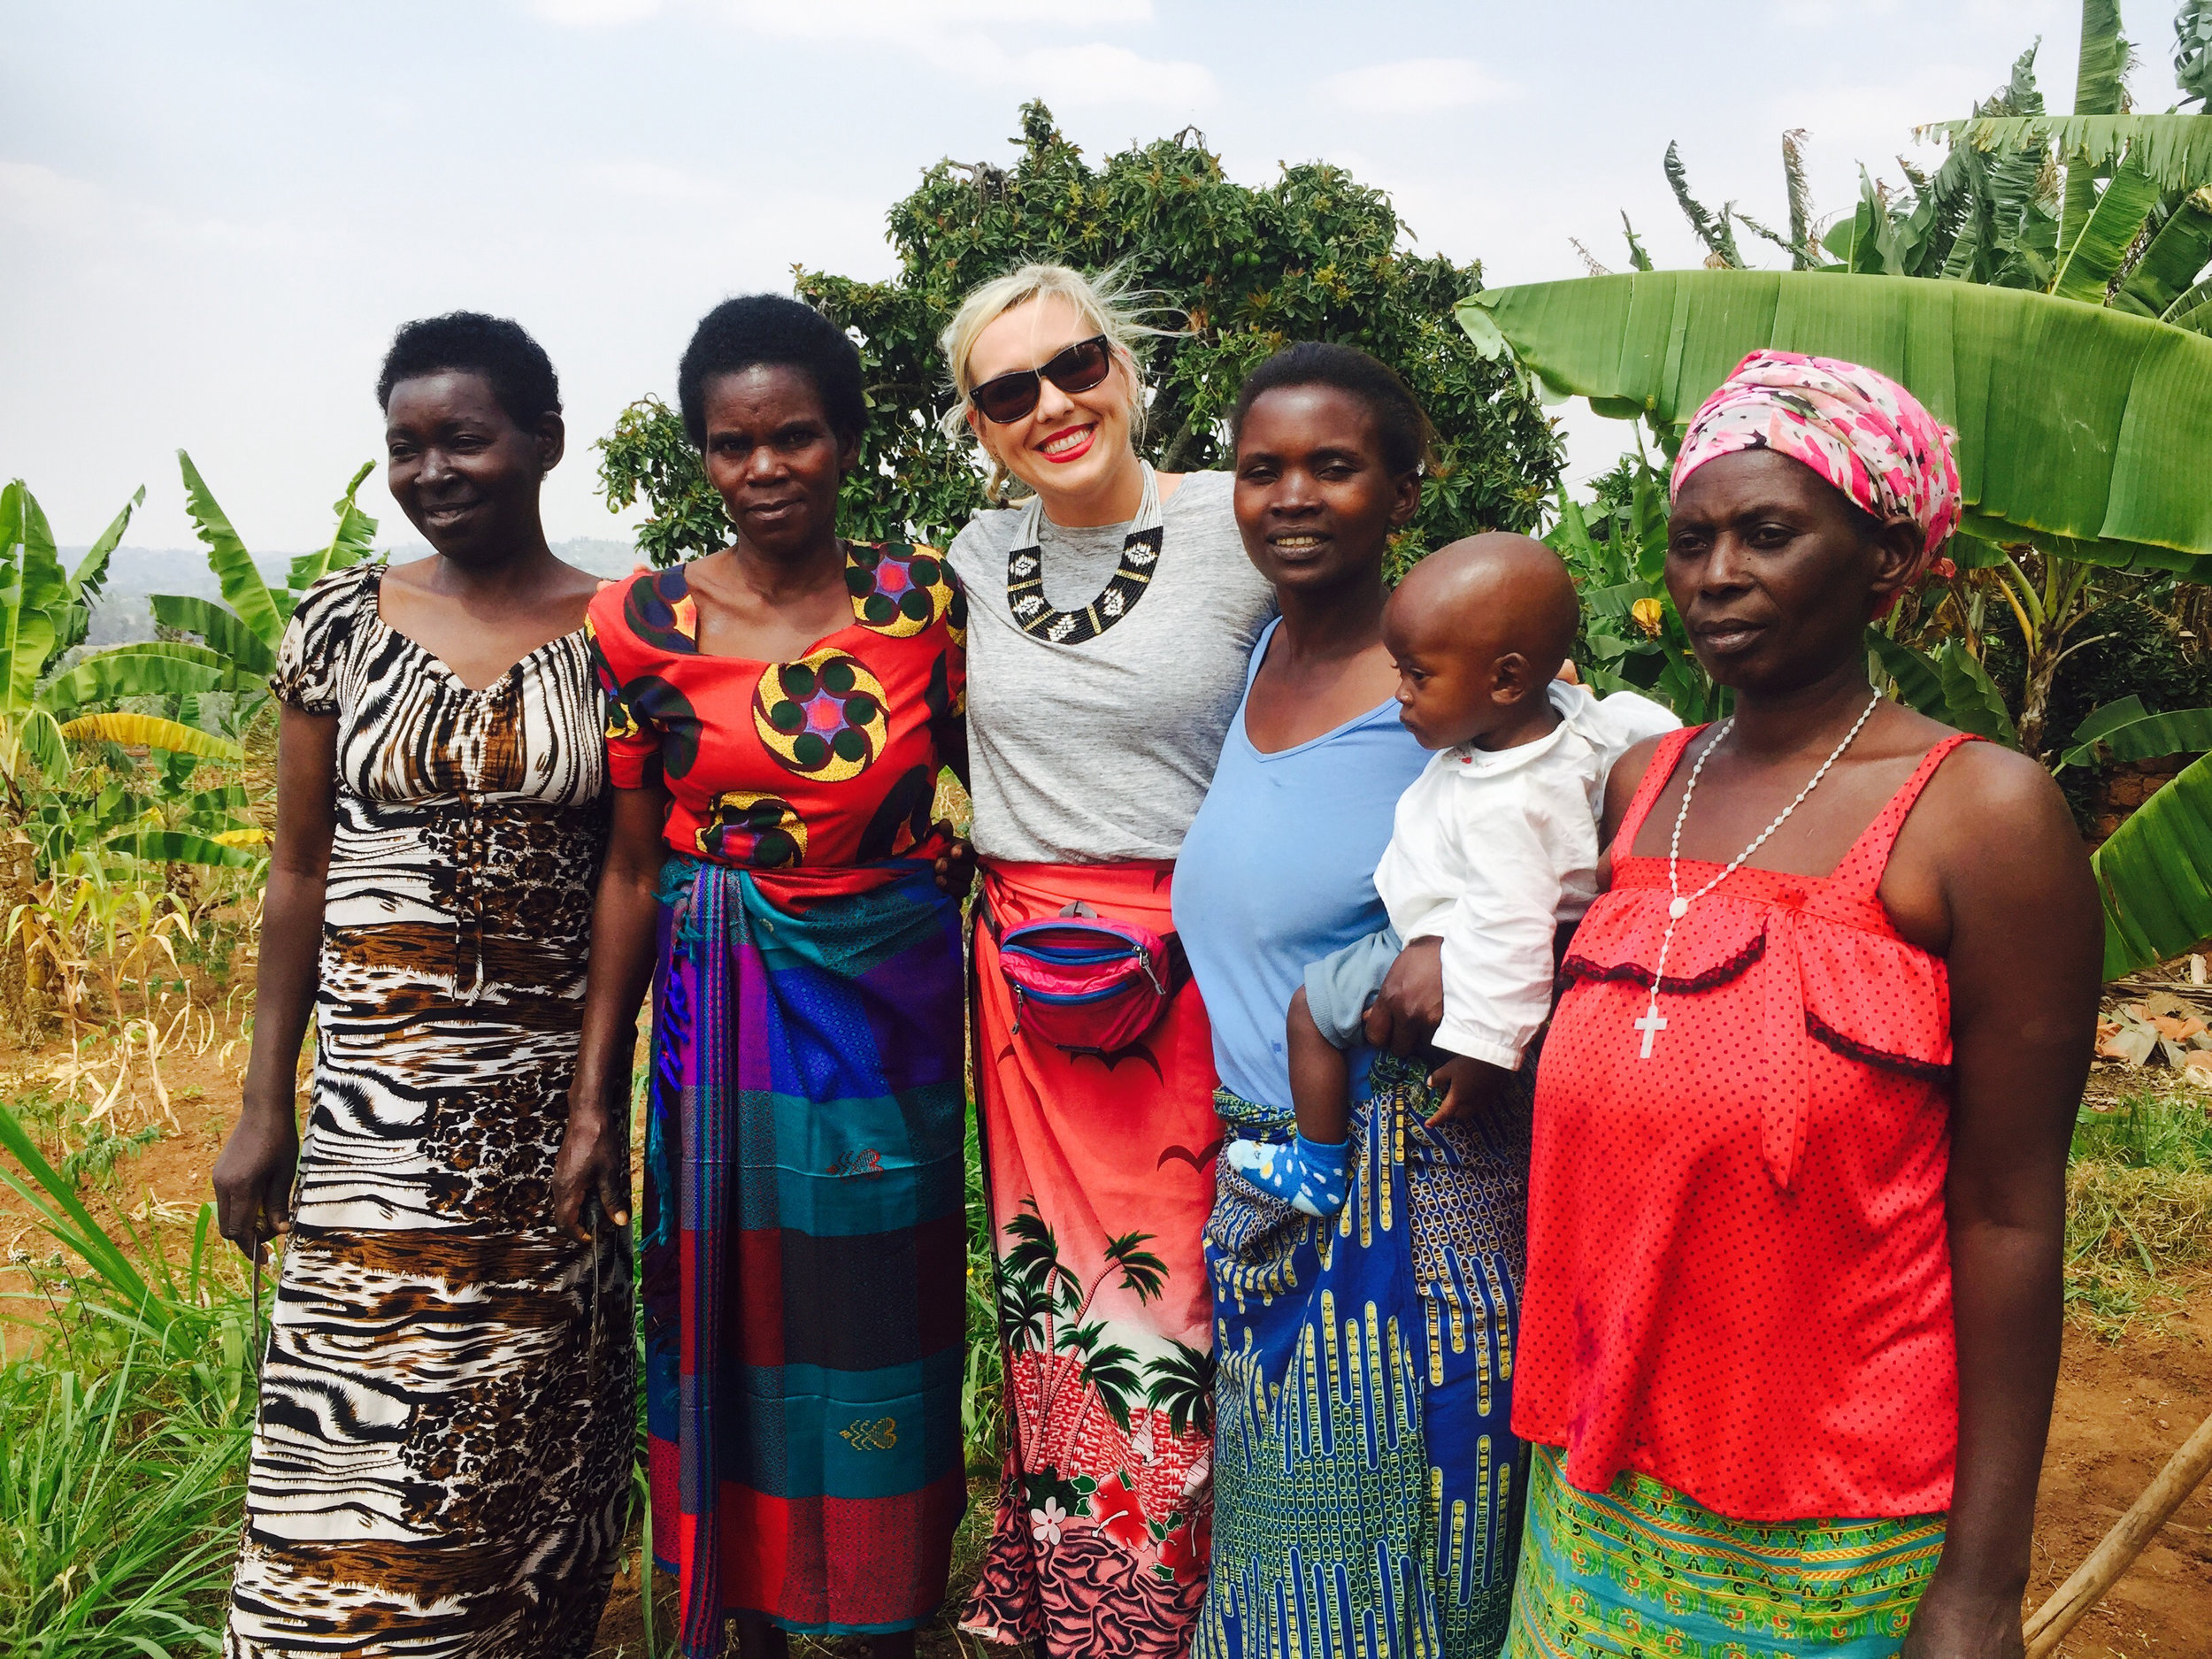 While in rural Muhanga, Southern Province Rwanda in 2016, Cassy spent the day with the women of Aziz Life while doing a community based culture experience.